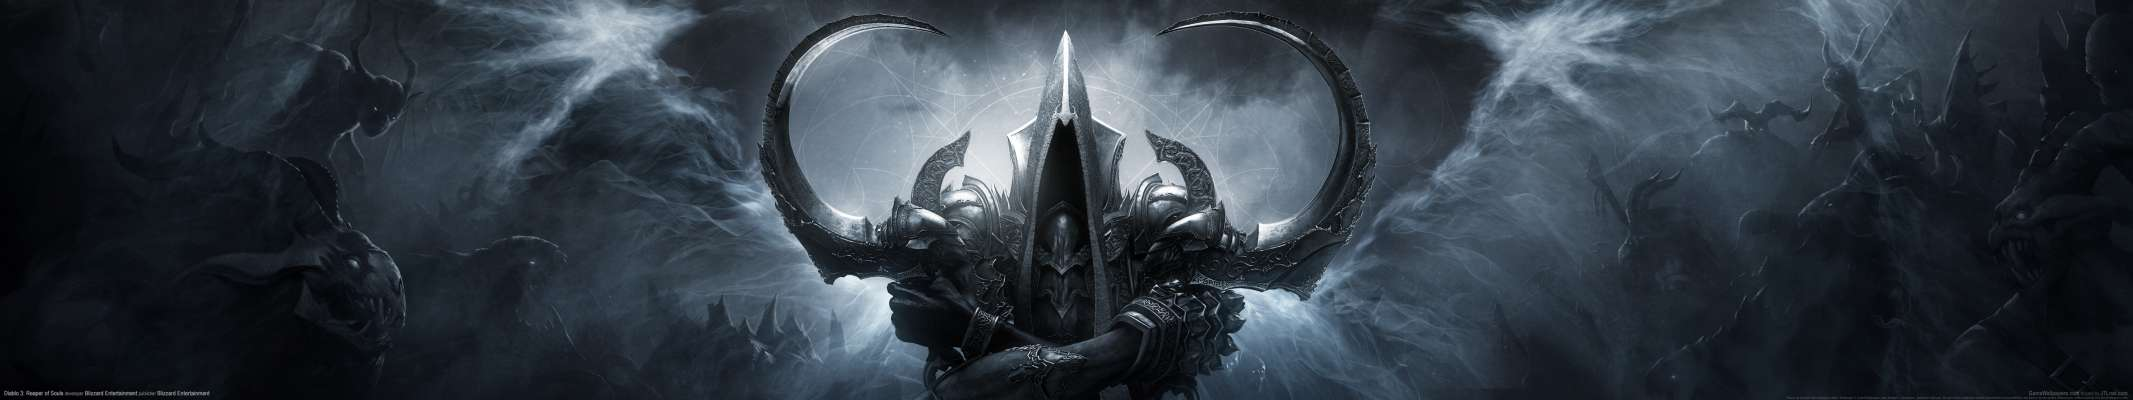 Diablo 3: Reaper of Souls triple screen wallpaper or background